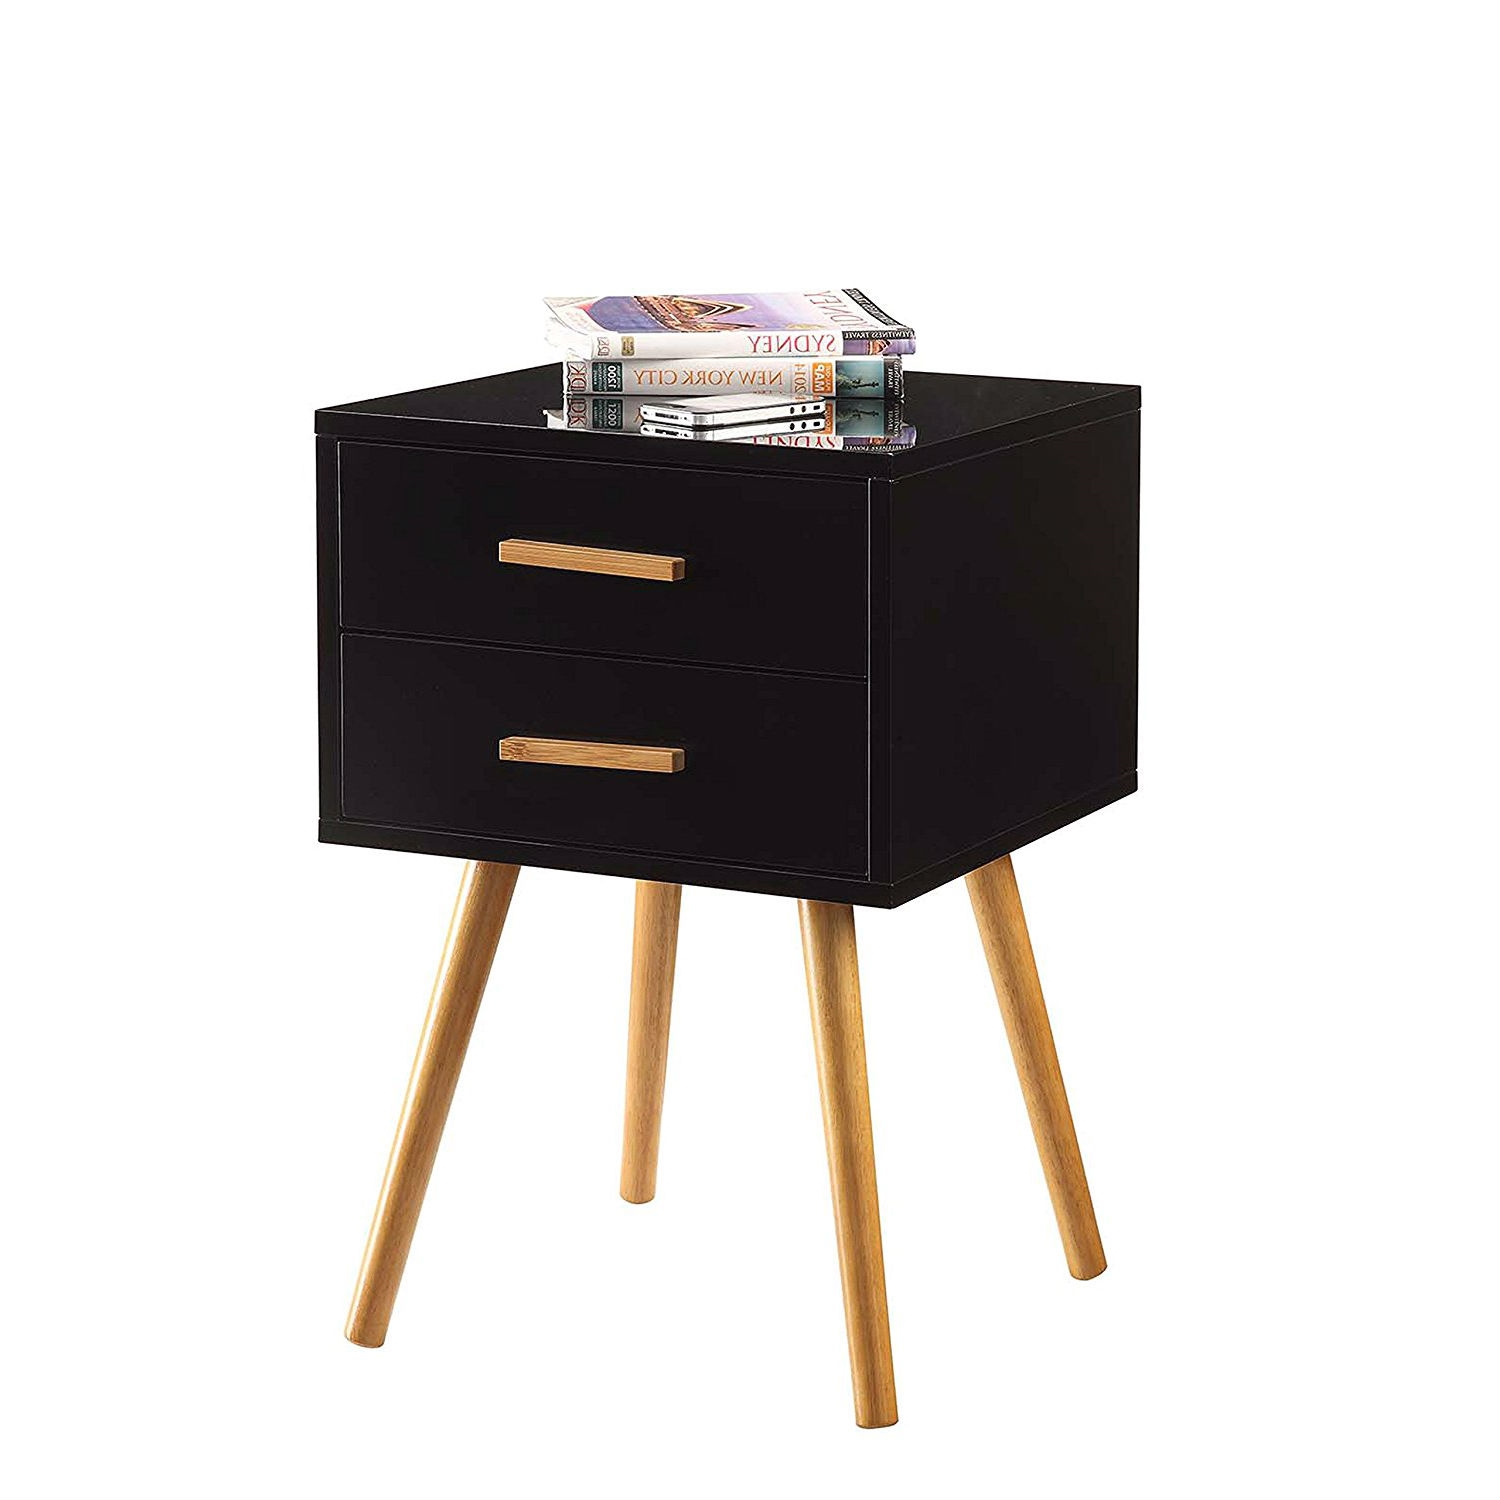 Modern Mid Century Style End Table Nightstand In Black Oak Wood Finish